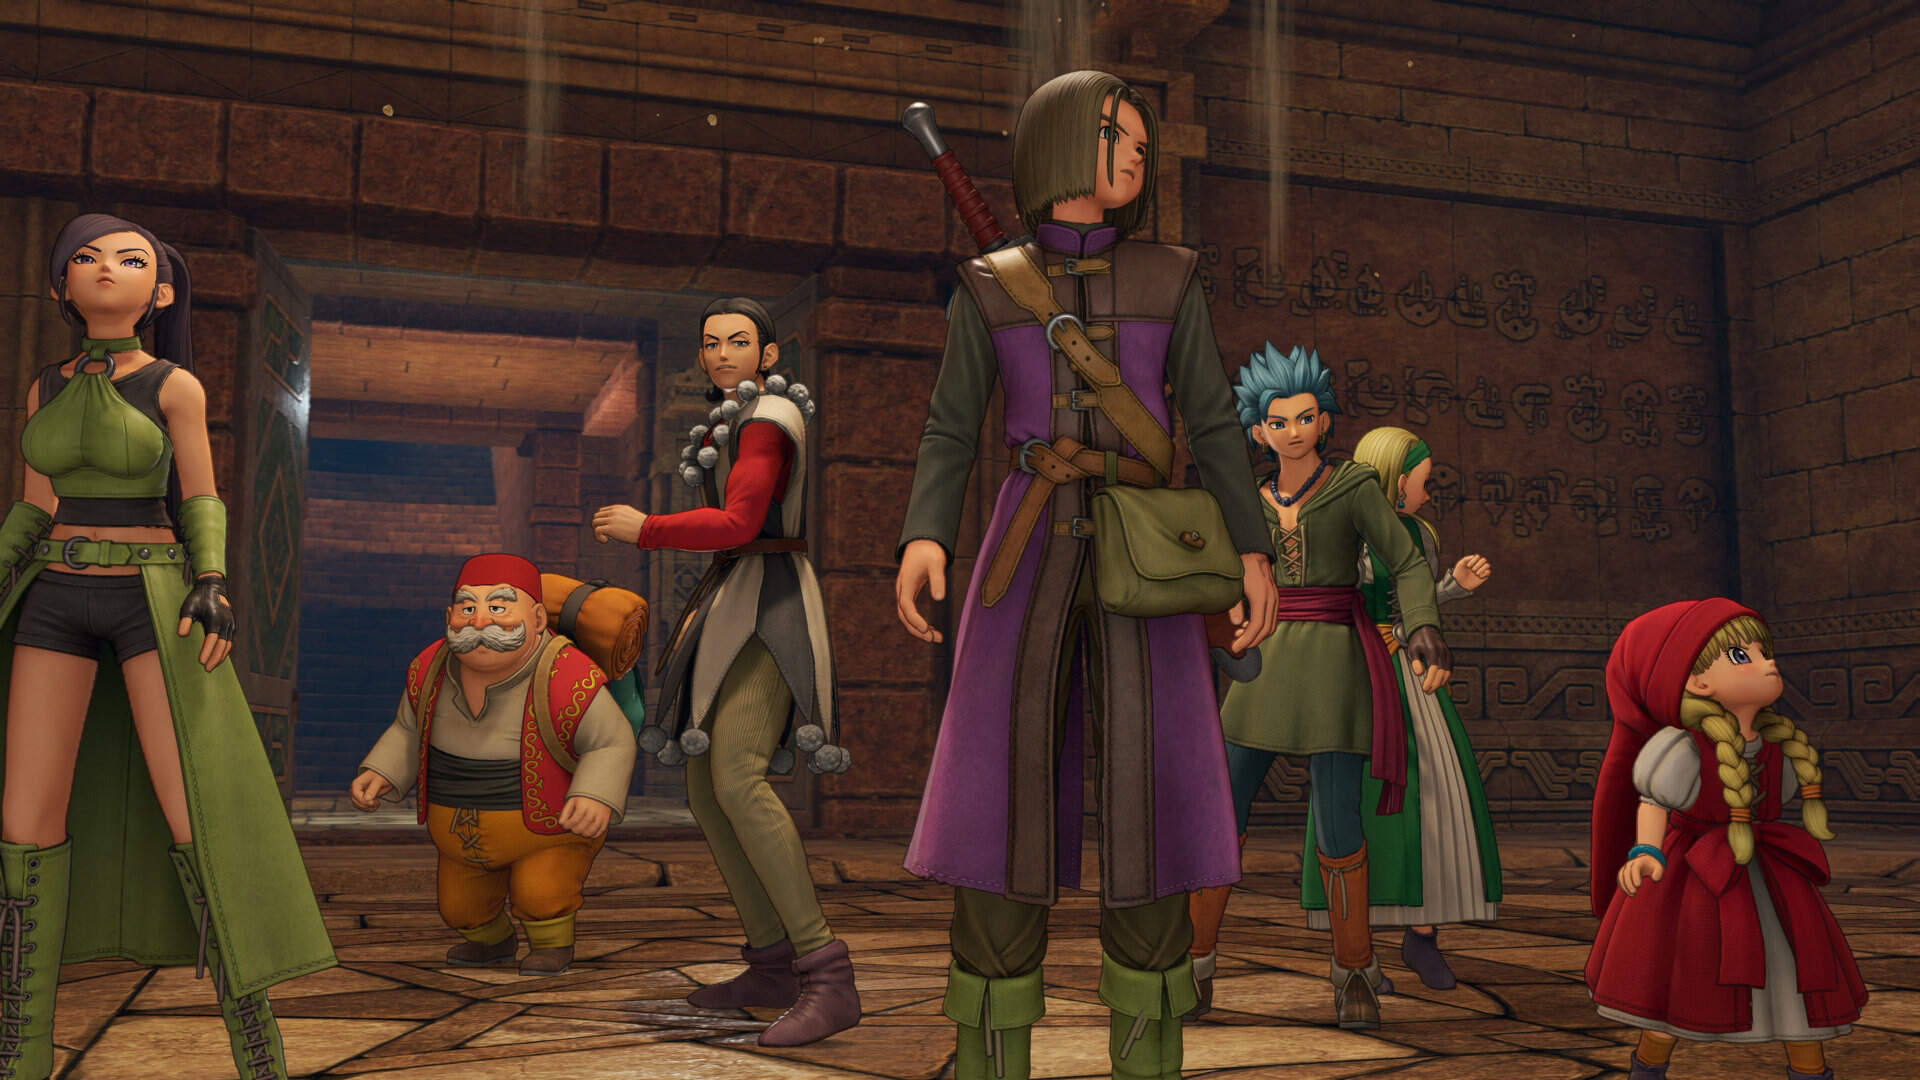 Dragon Quest 11 Switch Port Shines in Side-by-Side Comparison With PS4 Version